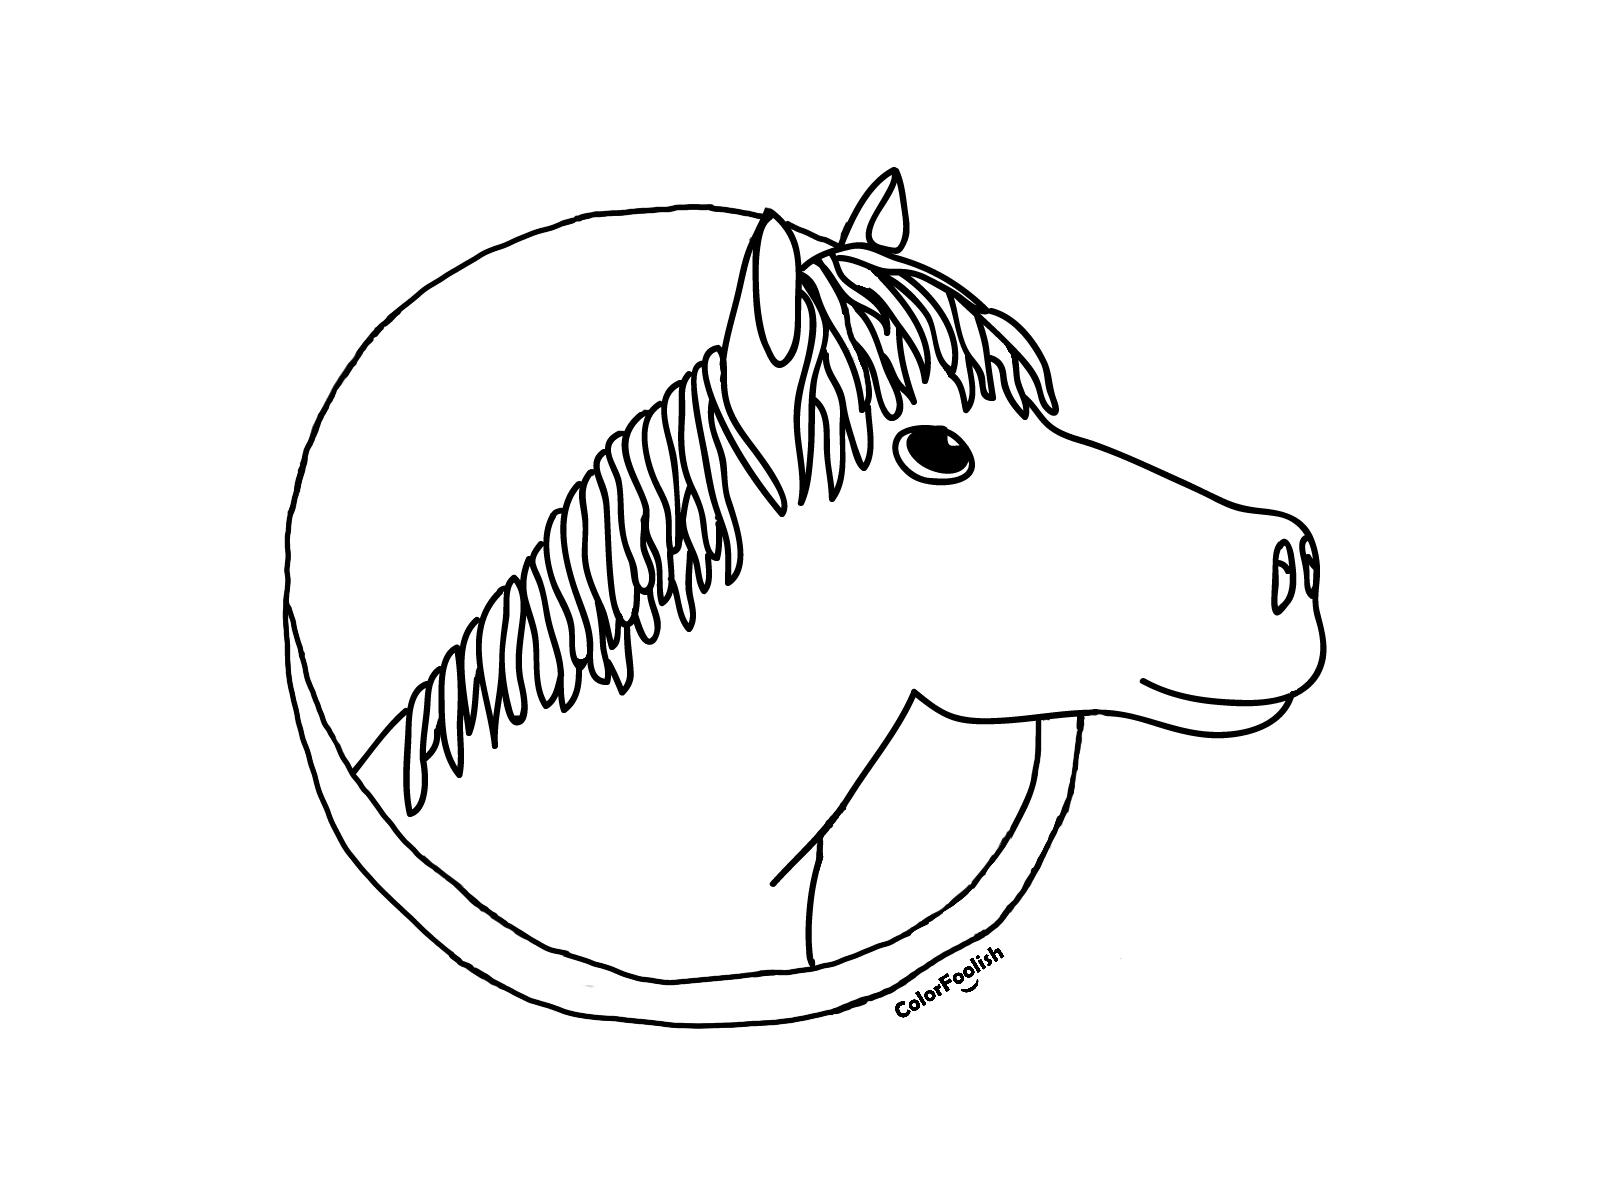 Coloring page of a horse head in a round frame